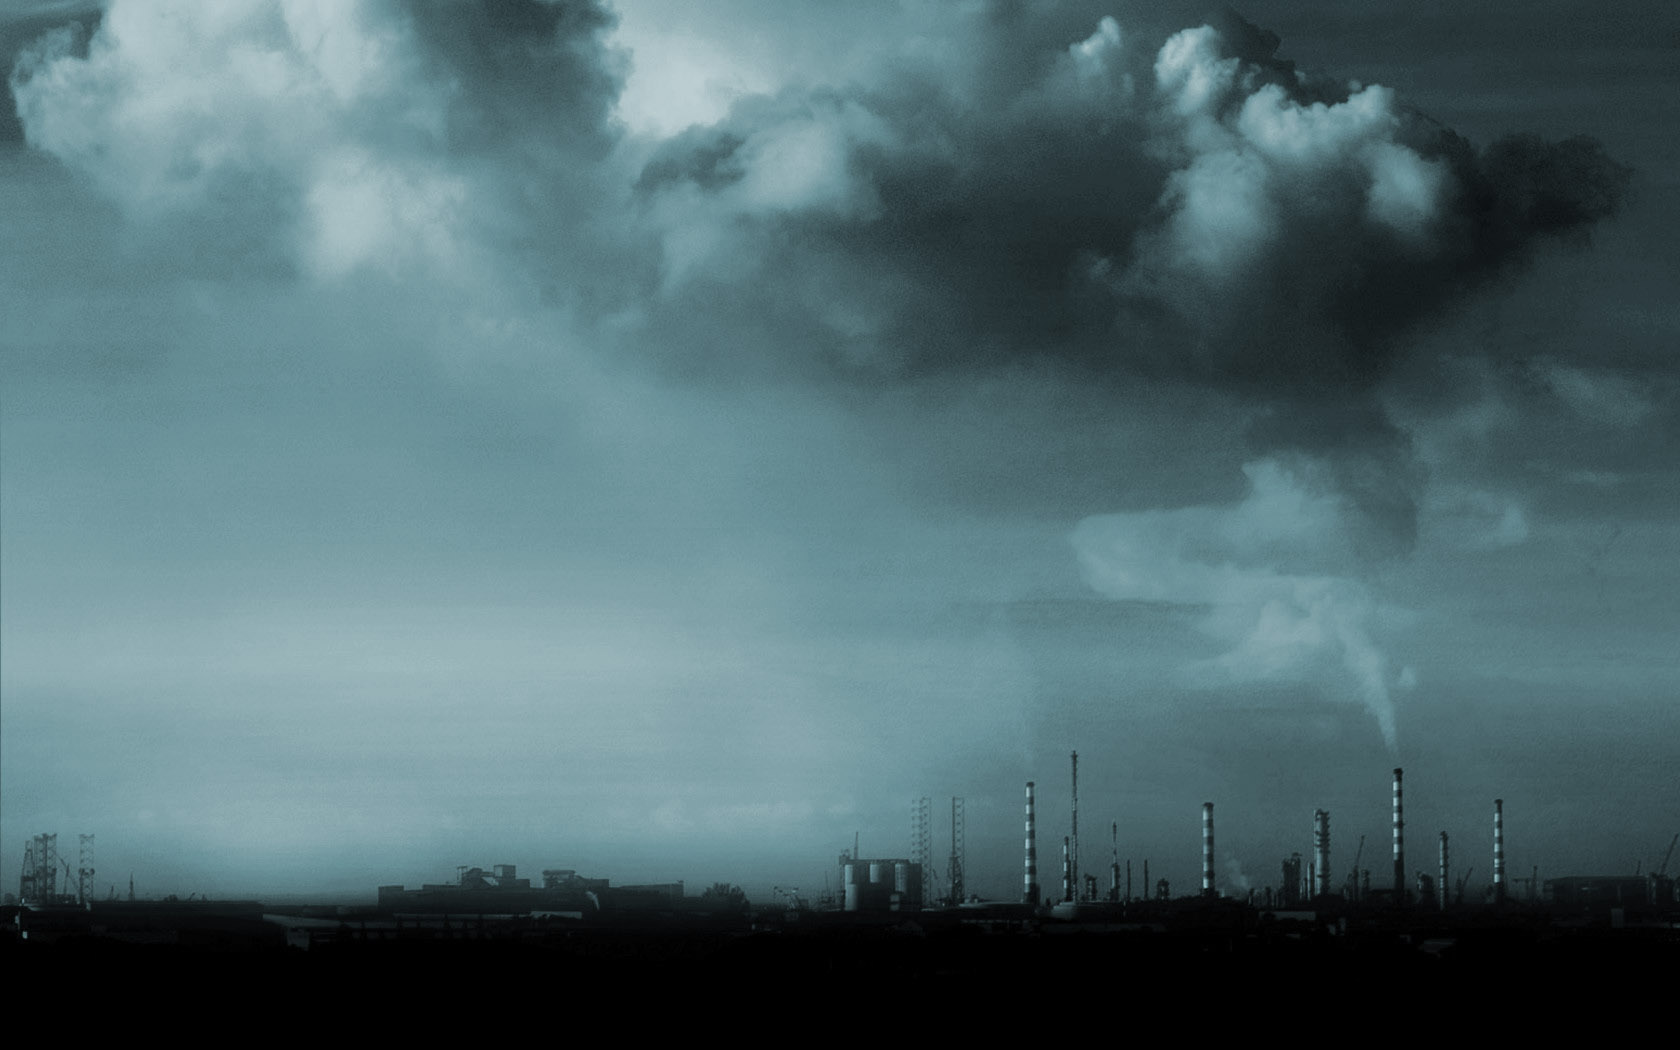 Best 42 Pollution Wallpaper on HipWallpaper Earth Pollution 1680x1050